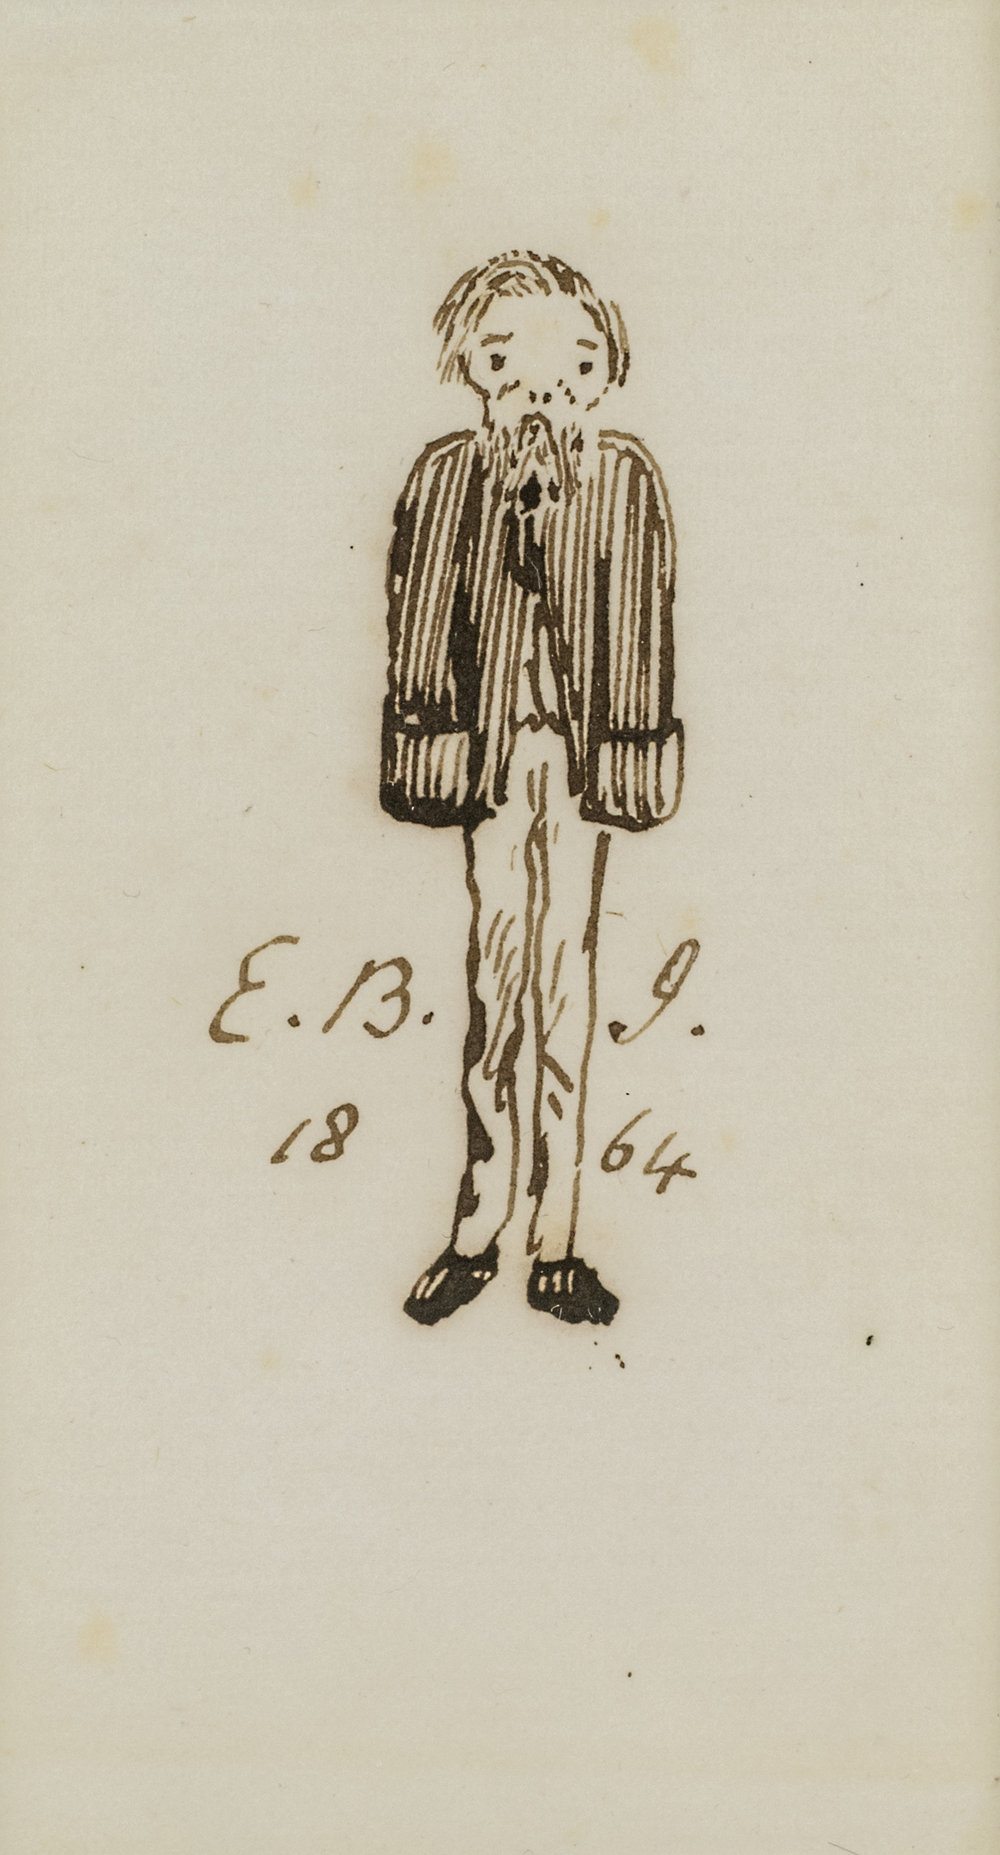 Sir Edward Coley Burne-Jones  (b. 1833)  Self-portrait,  1864 3 ½ x 2 ¼ in. pen and ink on paper